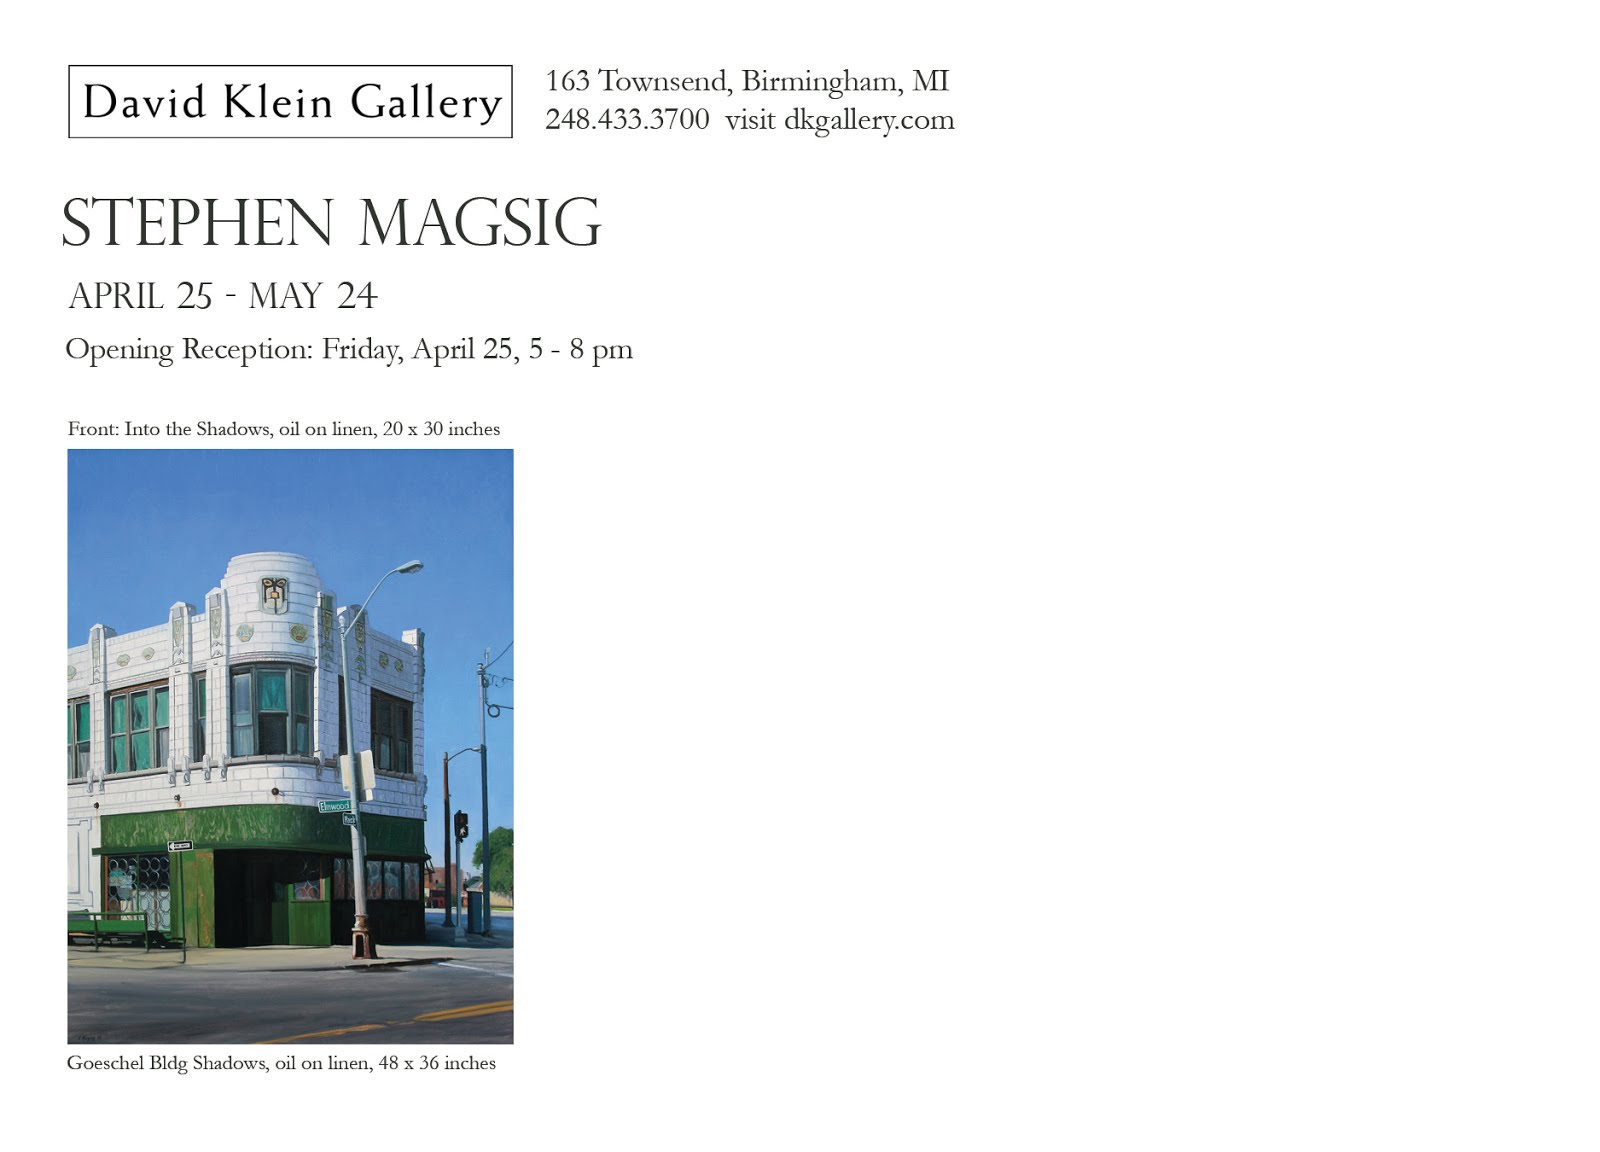 STEPHEN MAGSIG at David Klein Gallery